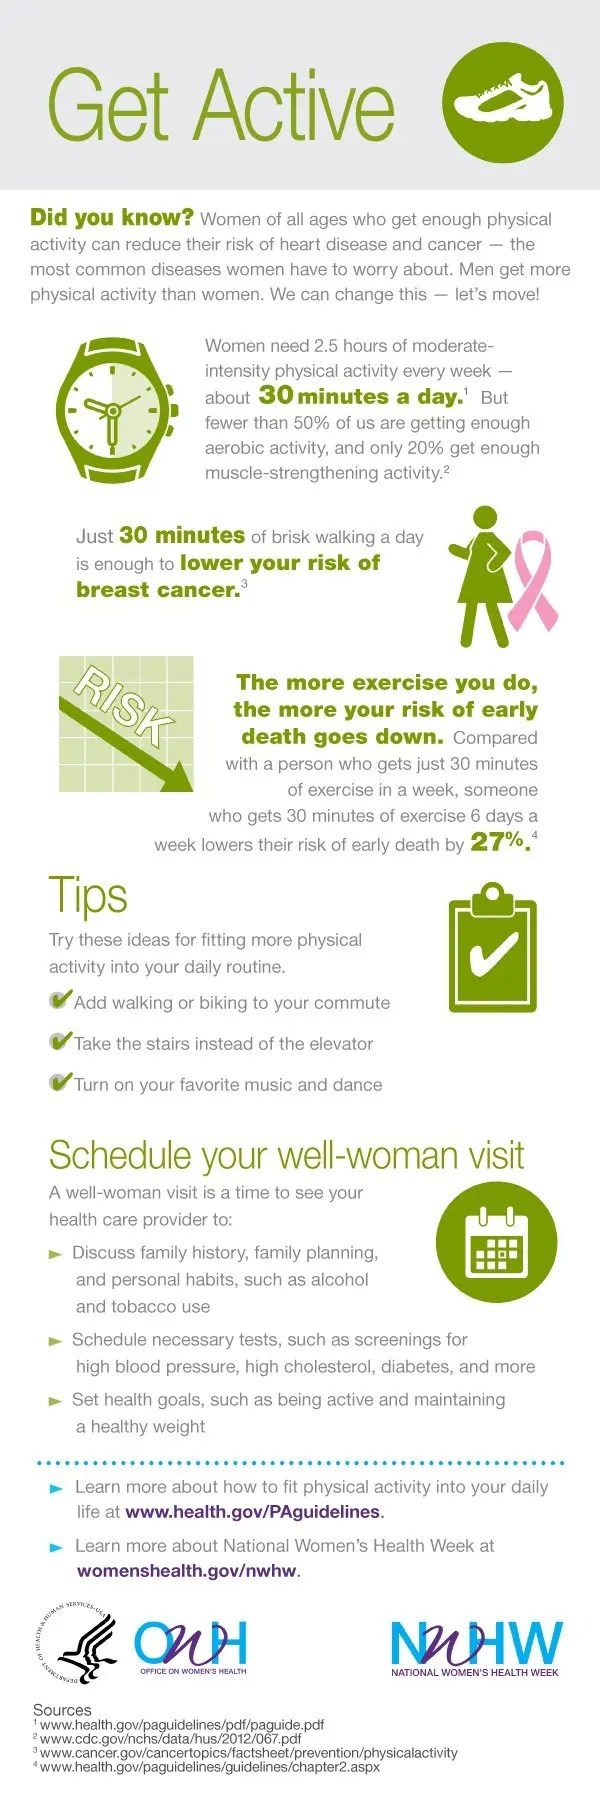 National Women's Health Week 2014 - Get Active